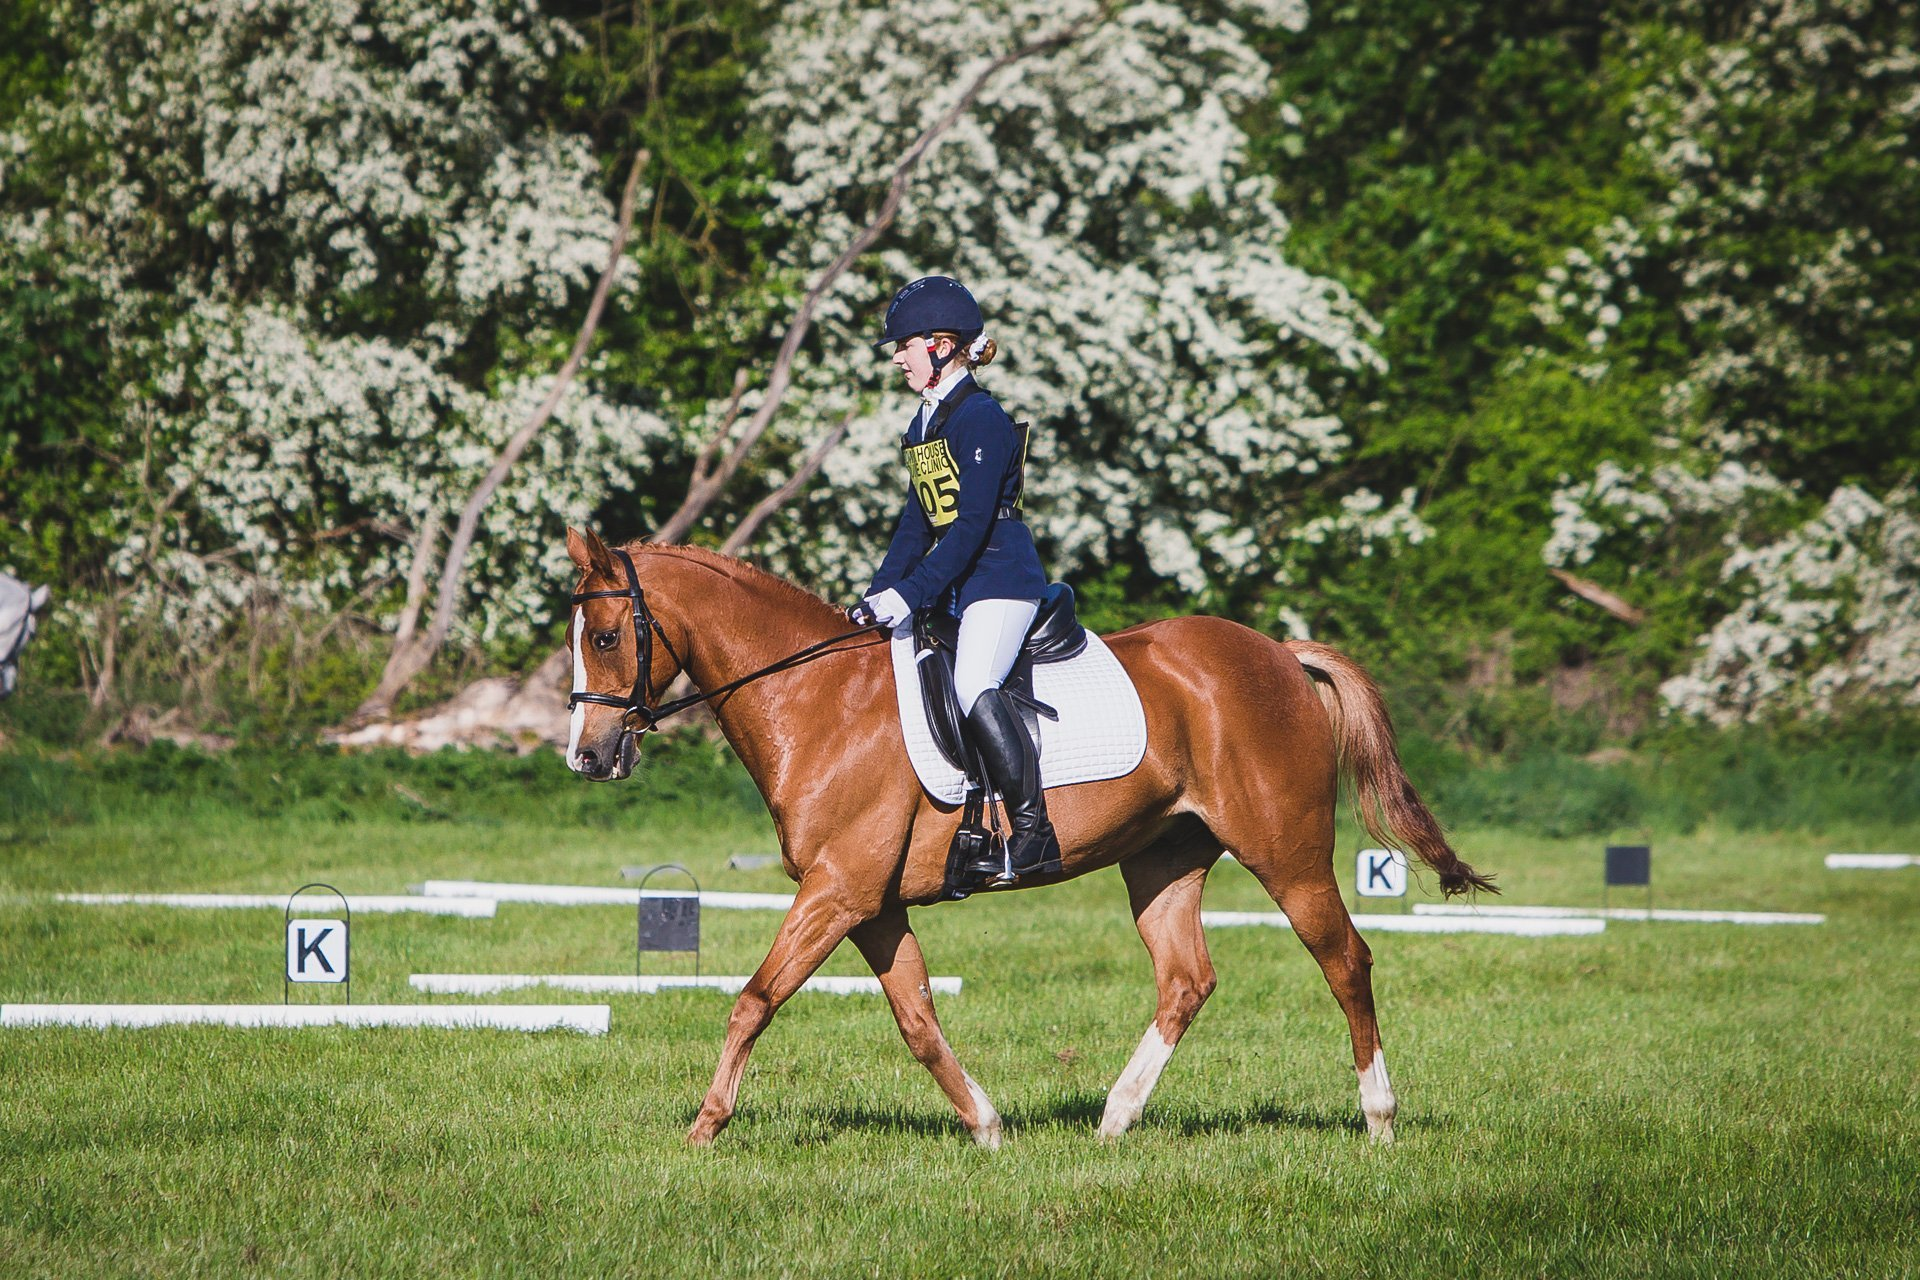 Llanymynech horse trials BE 100 u18 dressage 2017